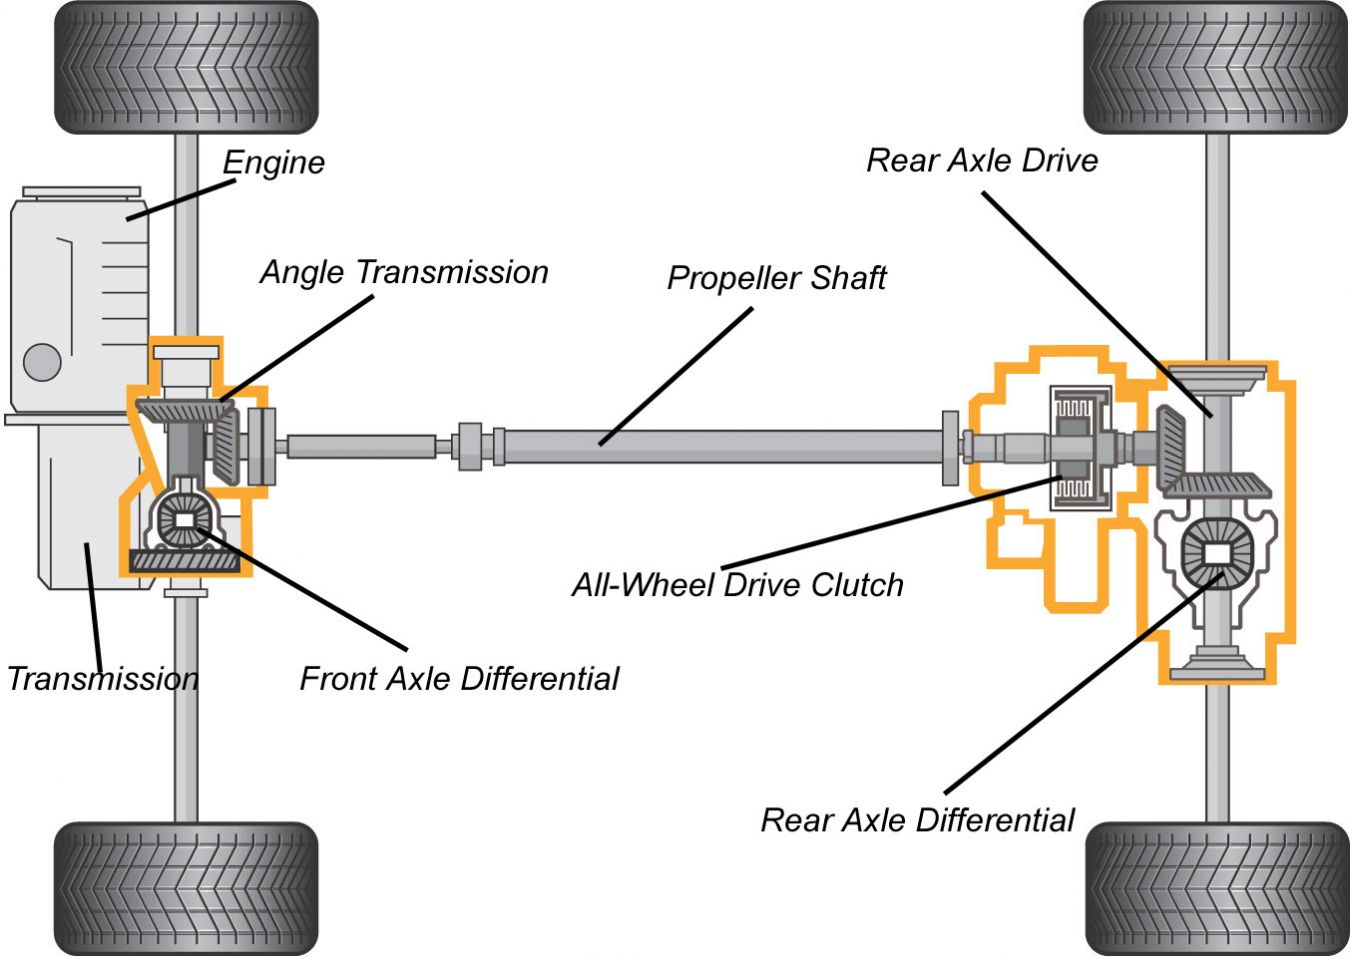 vw awd diagram nissan cvt awd diagram